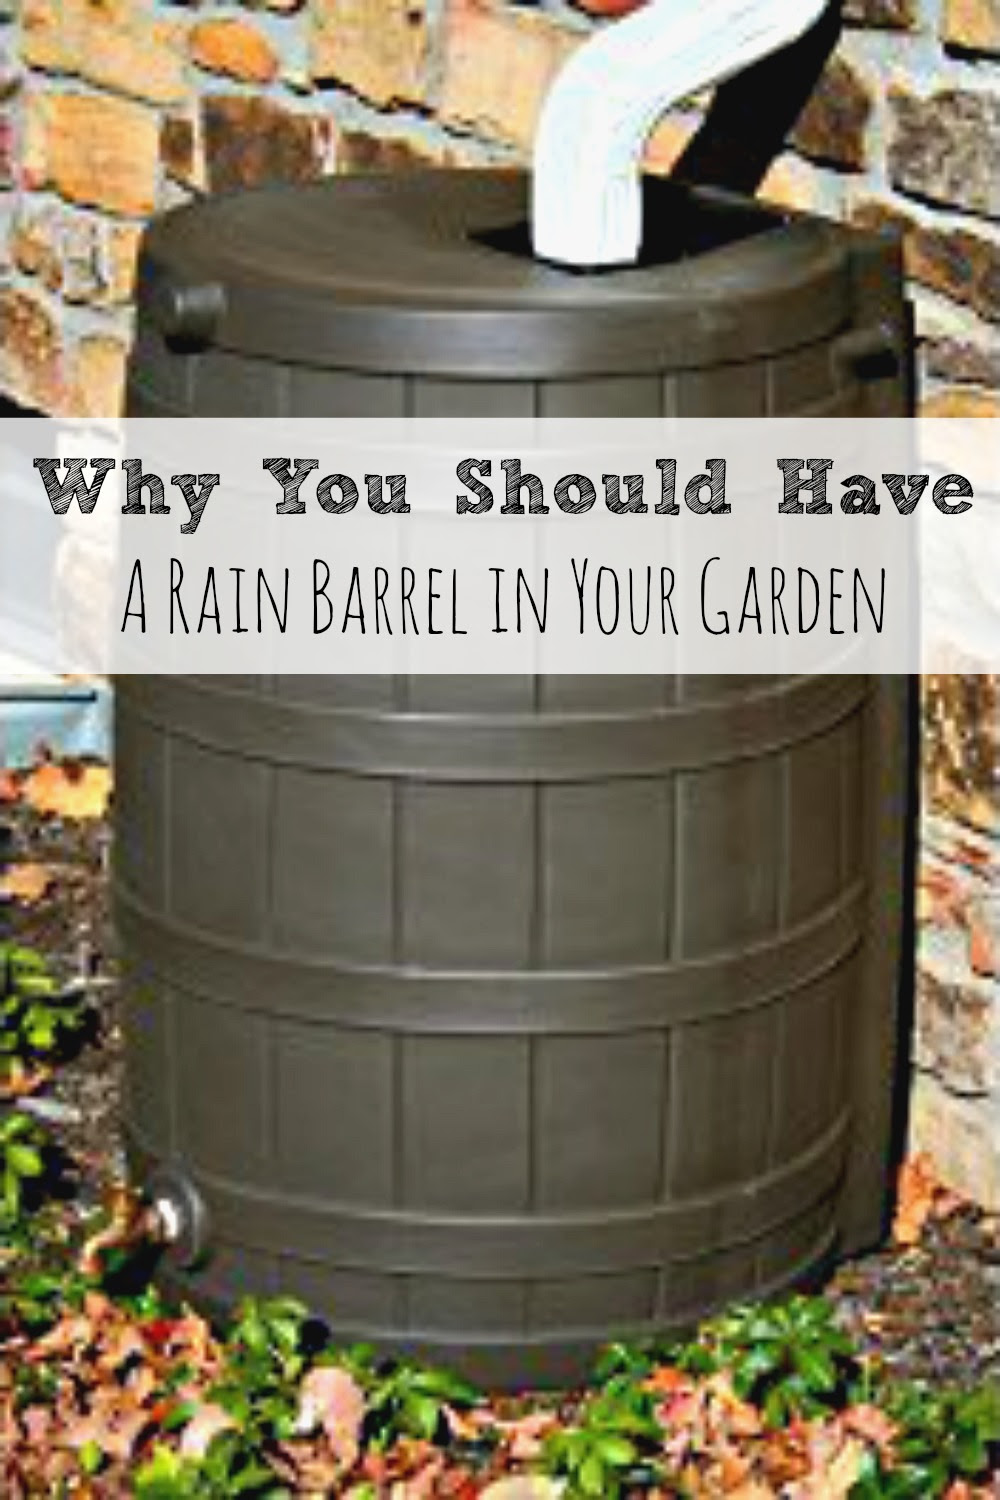 Why-You-Should-Have-a-Rain-Barrel-in-Your-Garden - HMLP # 36 Feature